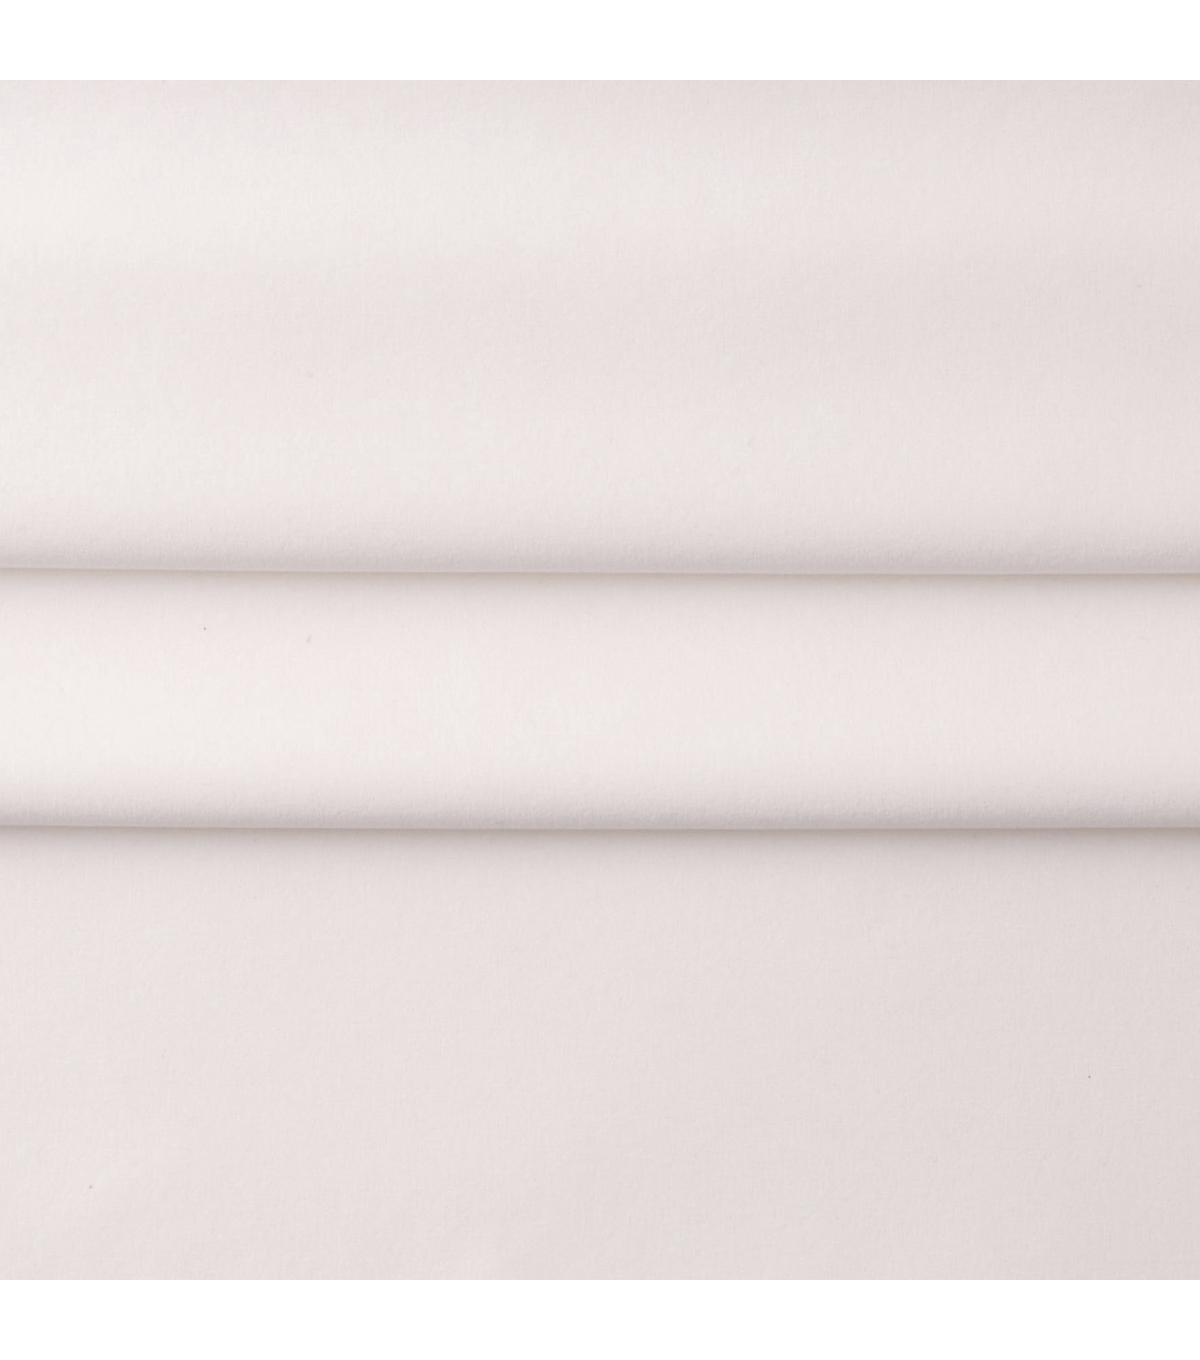 Casa Collection Stretch Satin Fabric -Charm Brt White